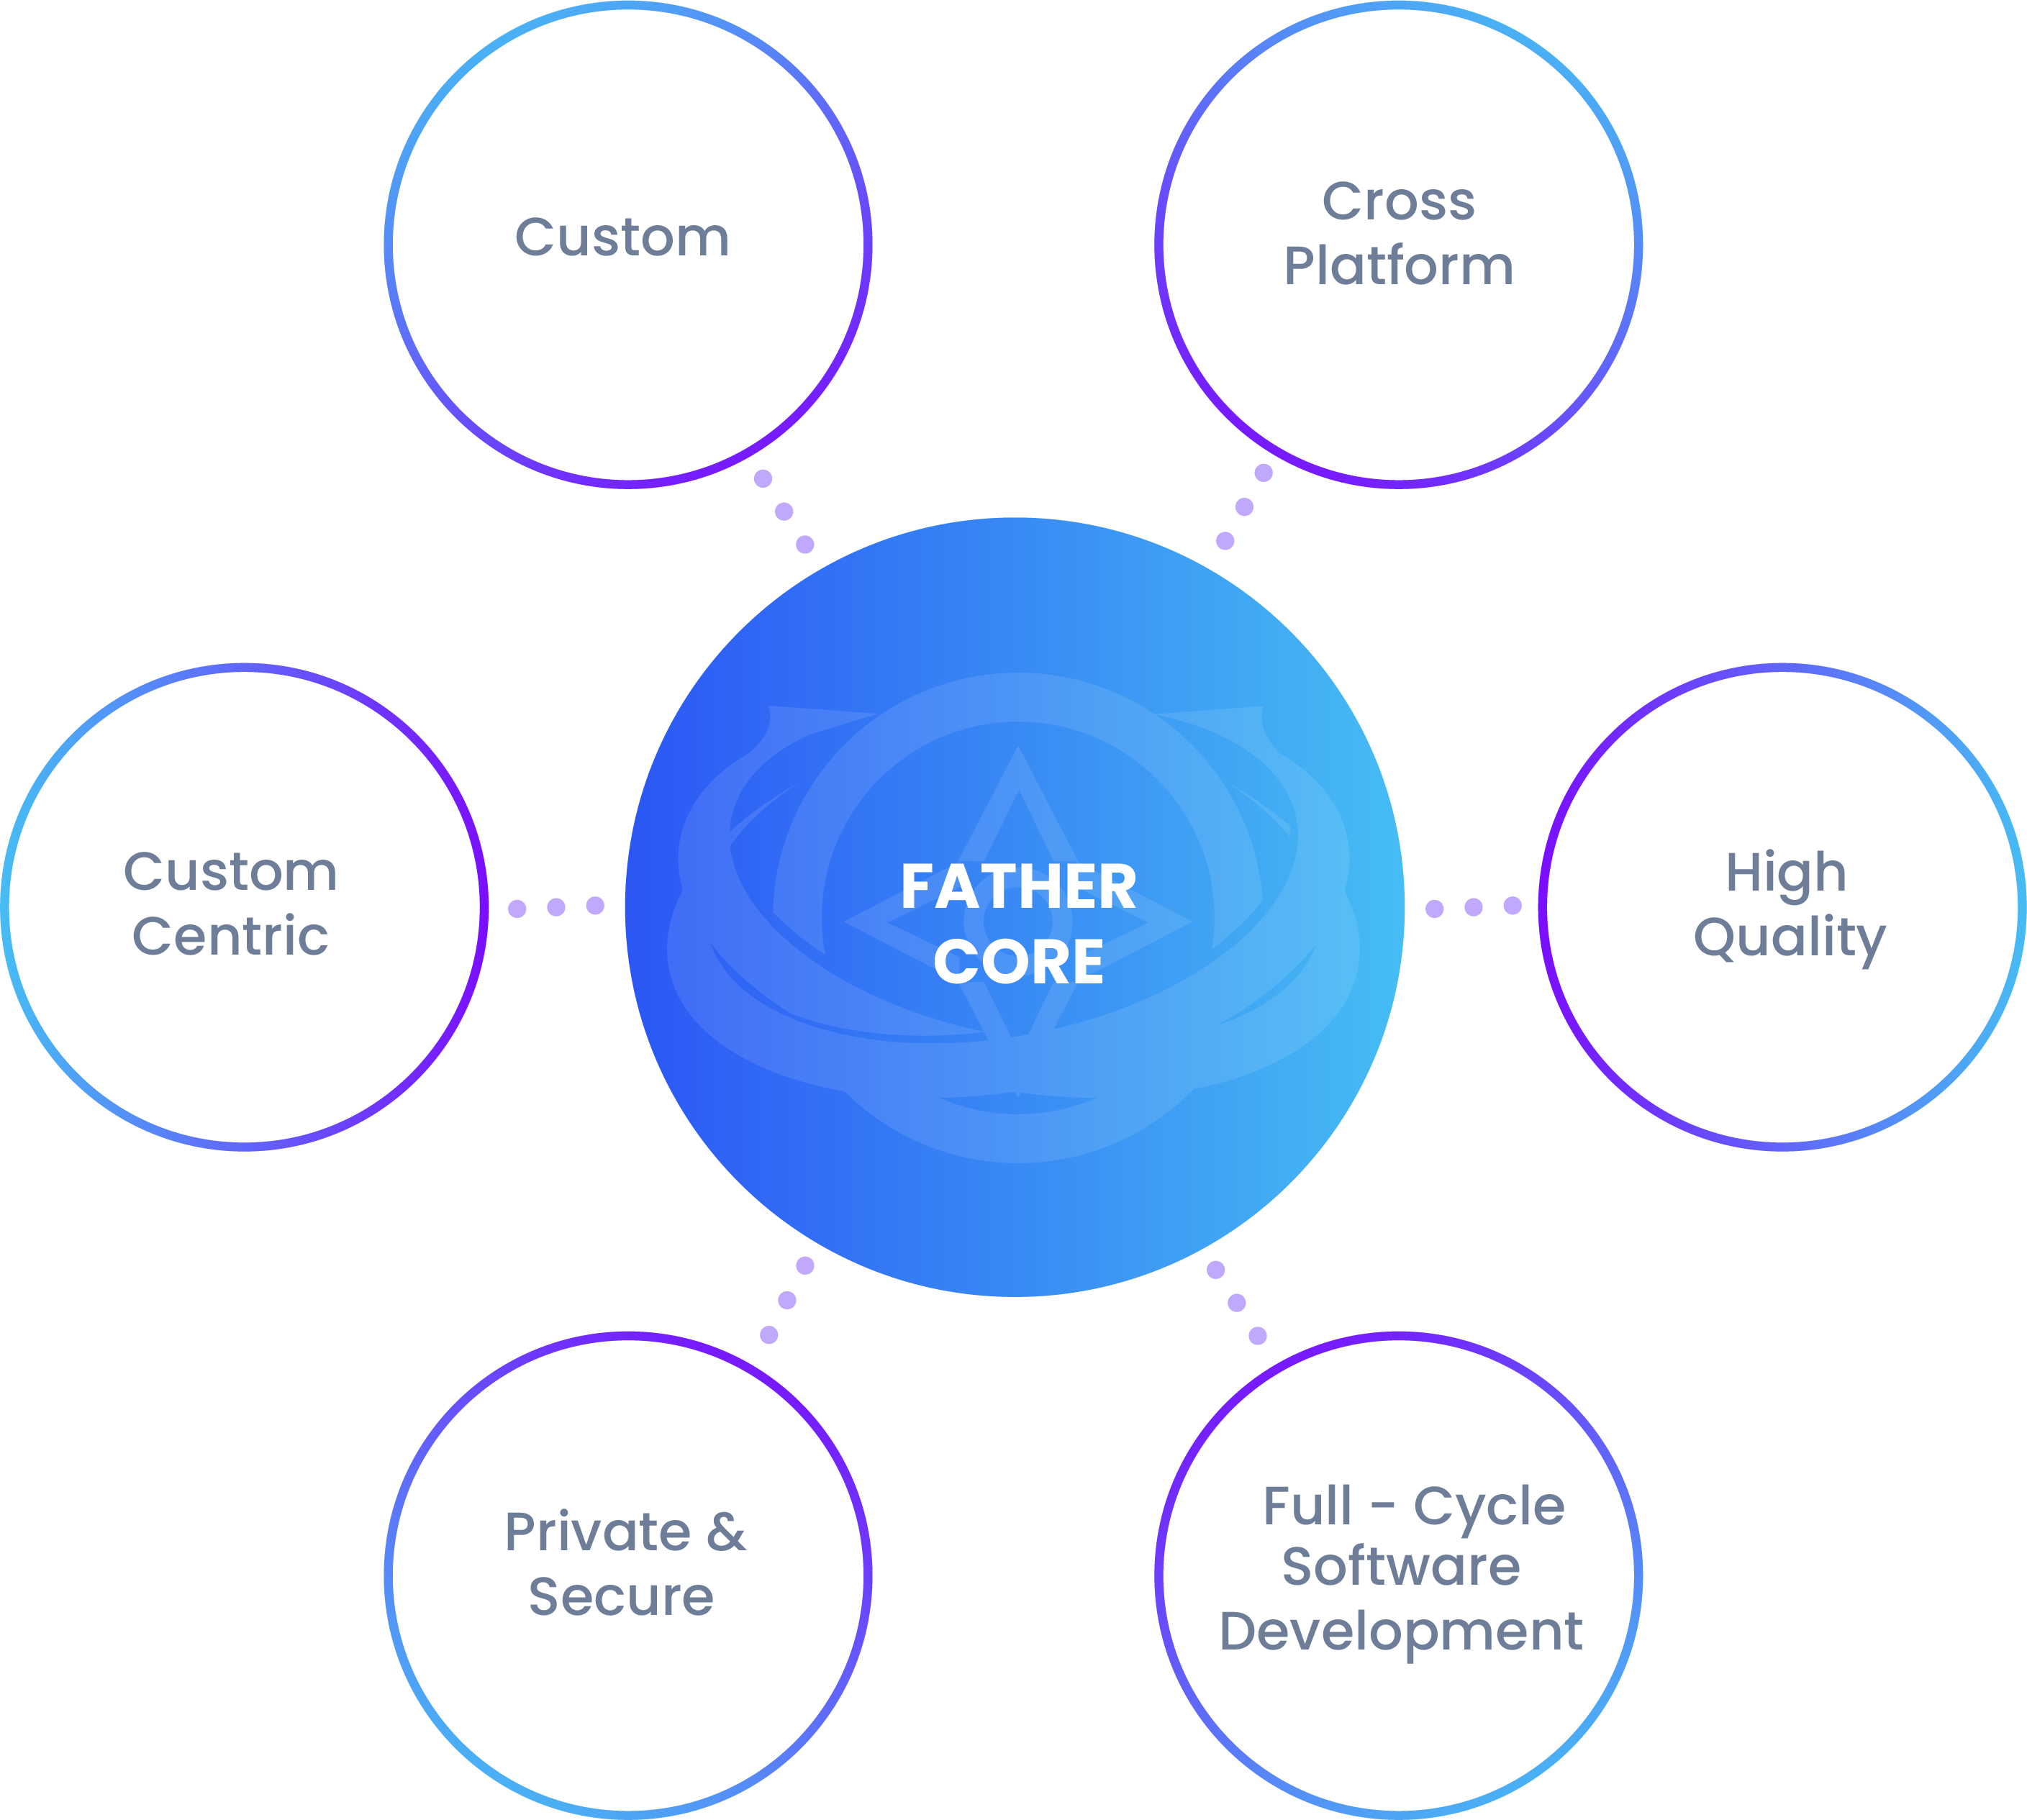 FaTHER Solutions Graph